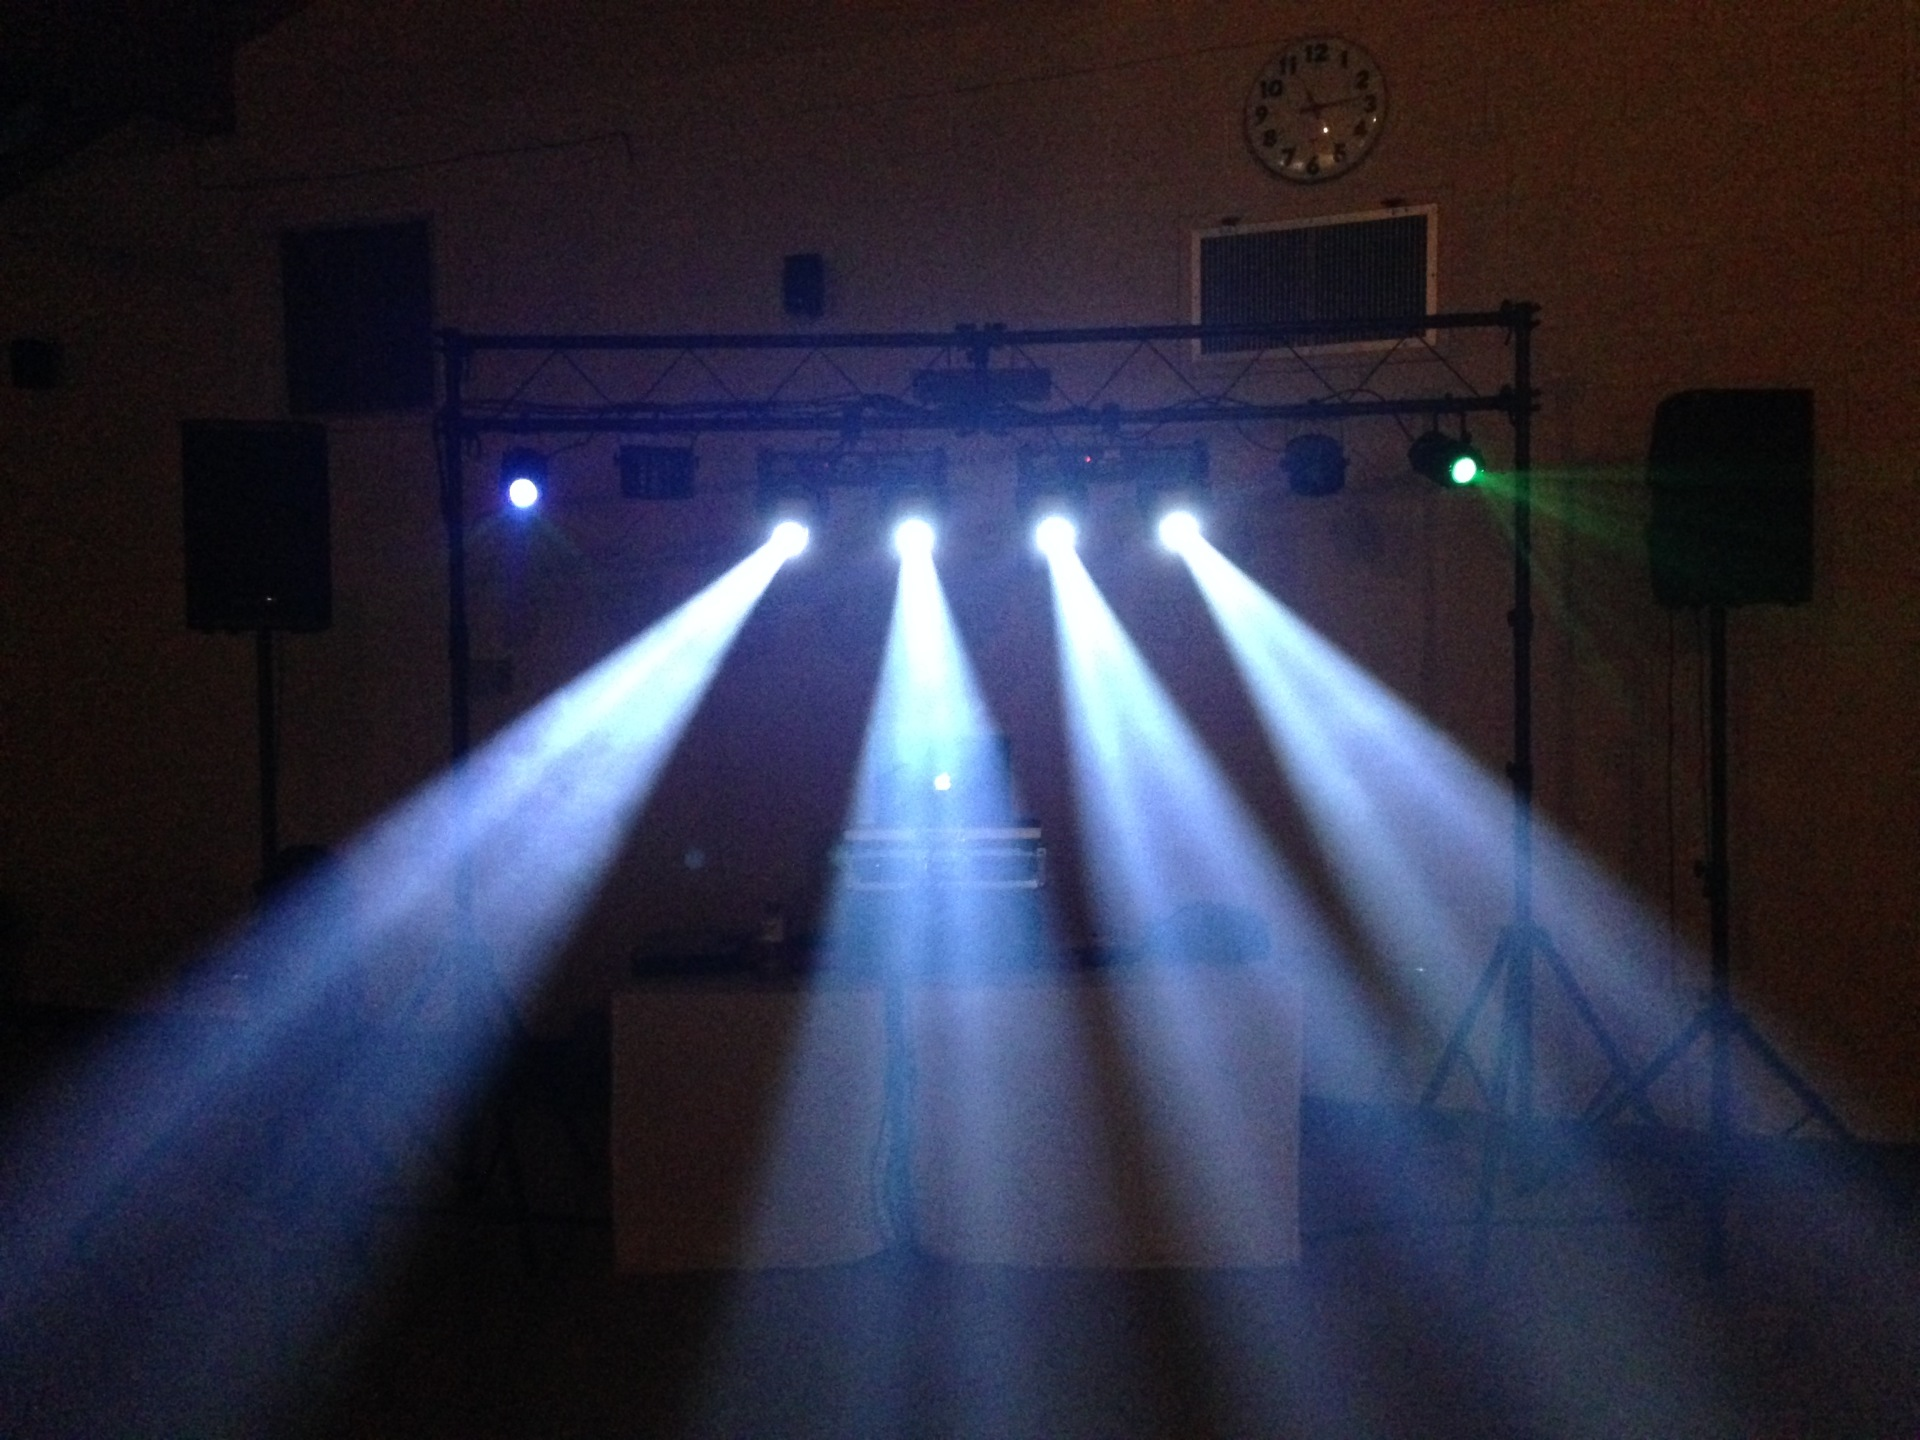 LED dance floor lighting